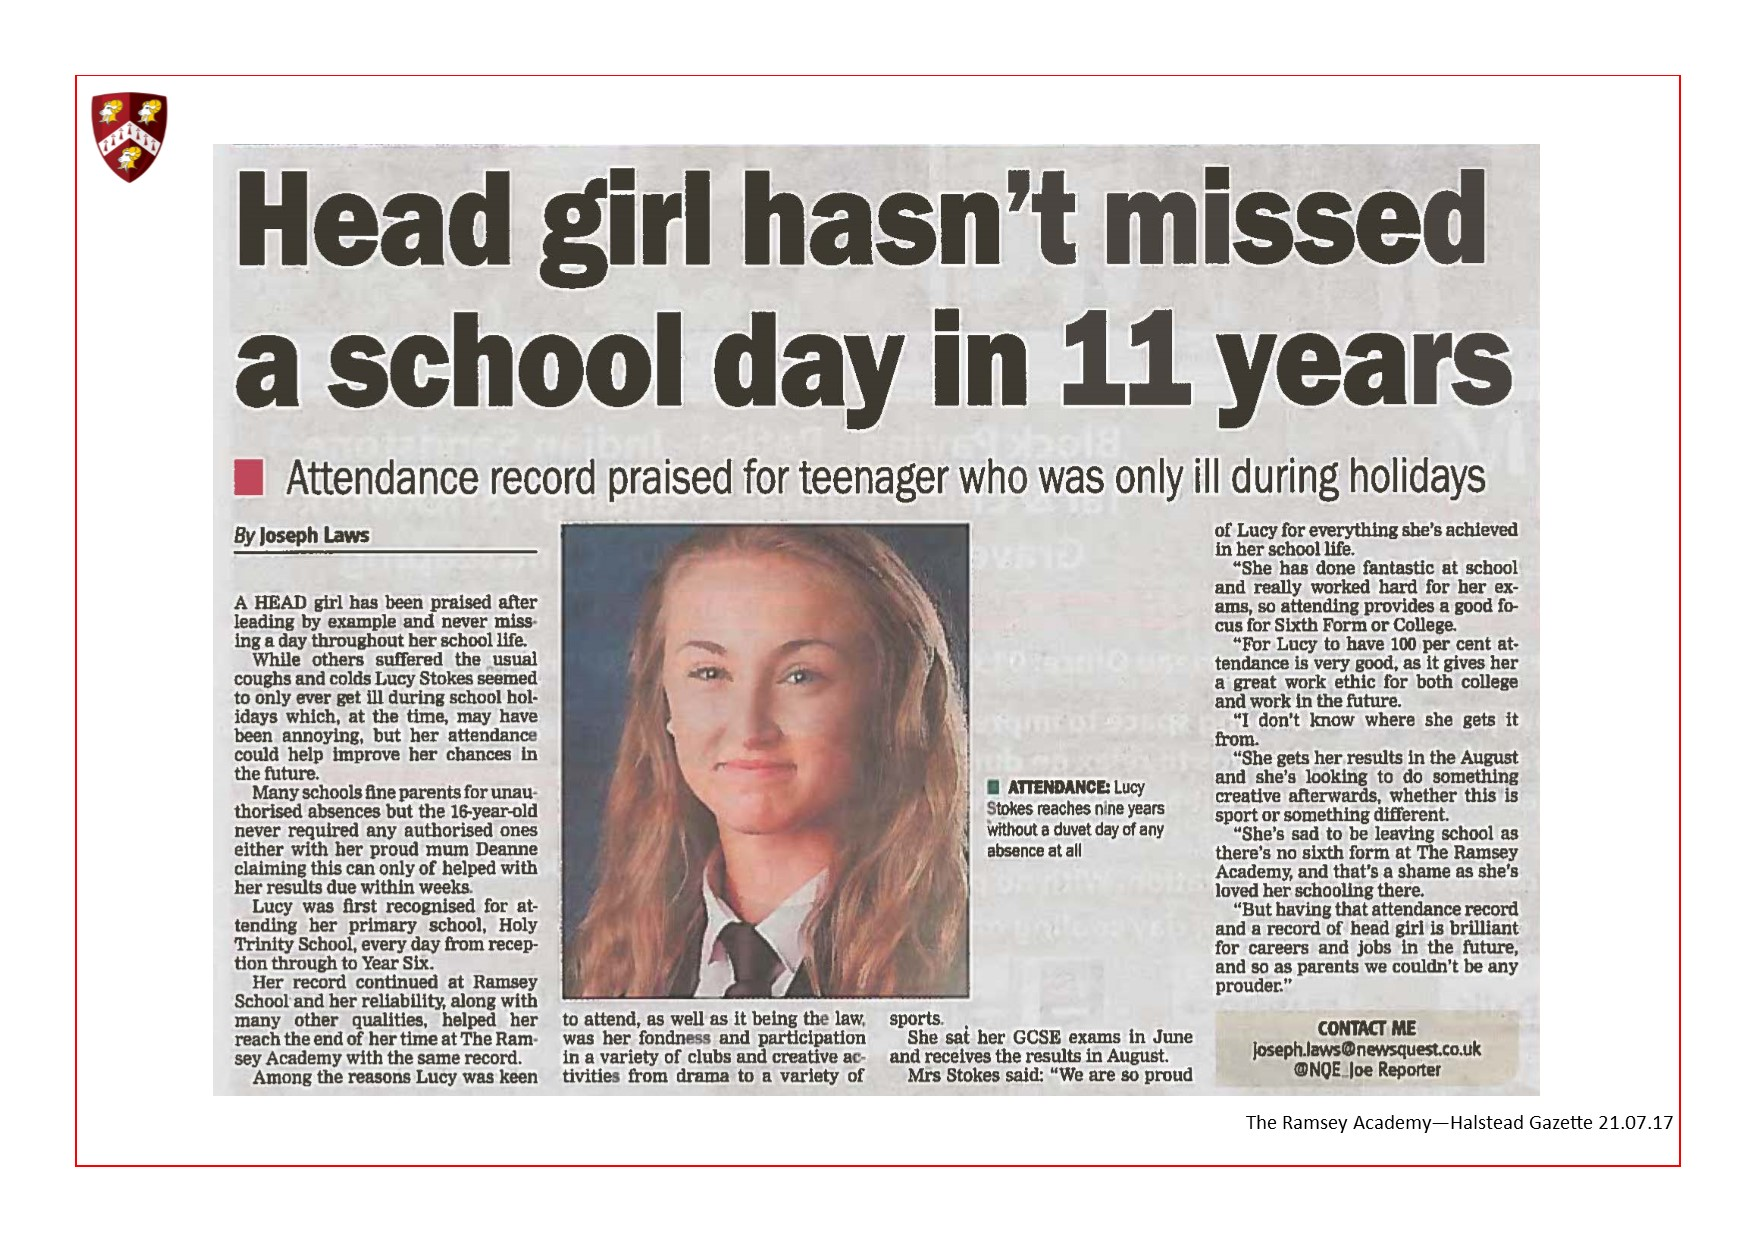 Head Girl Hasn't Missed a School Day in 11 Years 21.07.17